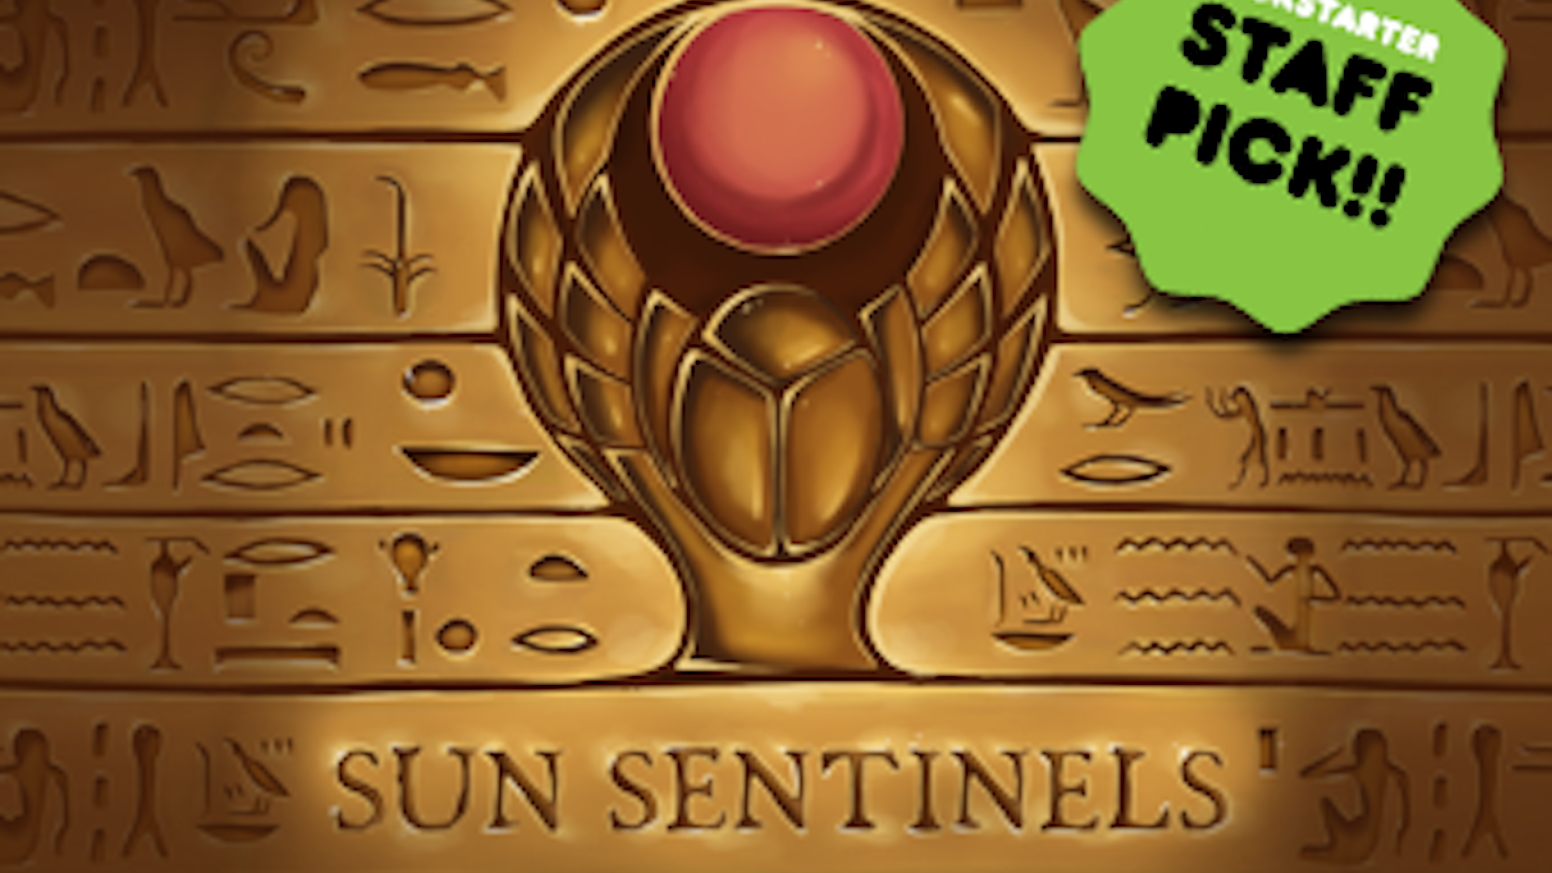 Sun Sentinels is a 3D tower defense game, featuring optical illusion puzzles, traps, spells, level editing and Egyptian mythology.